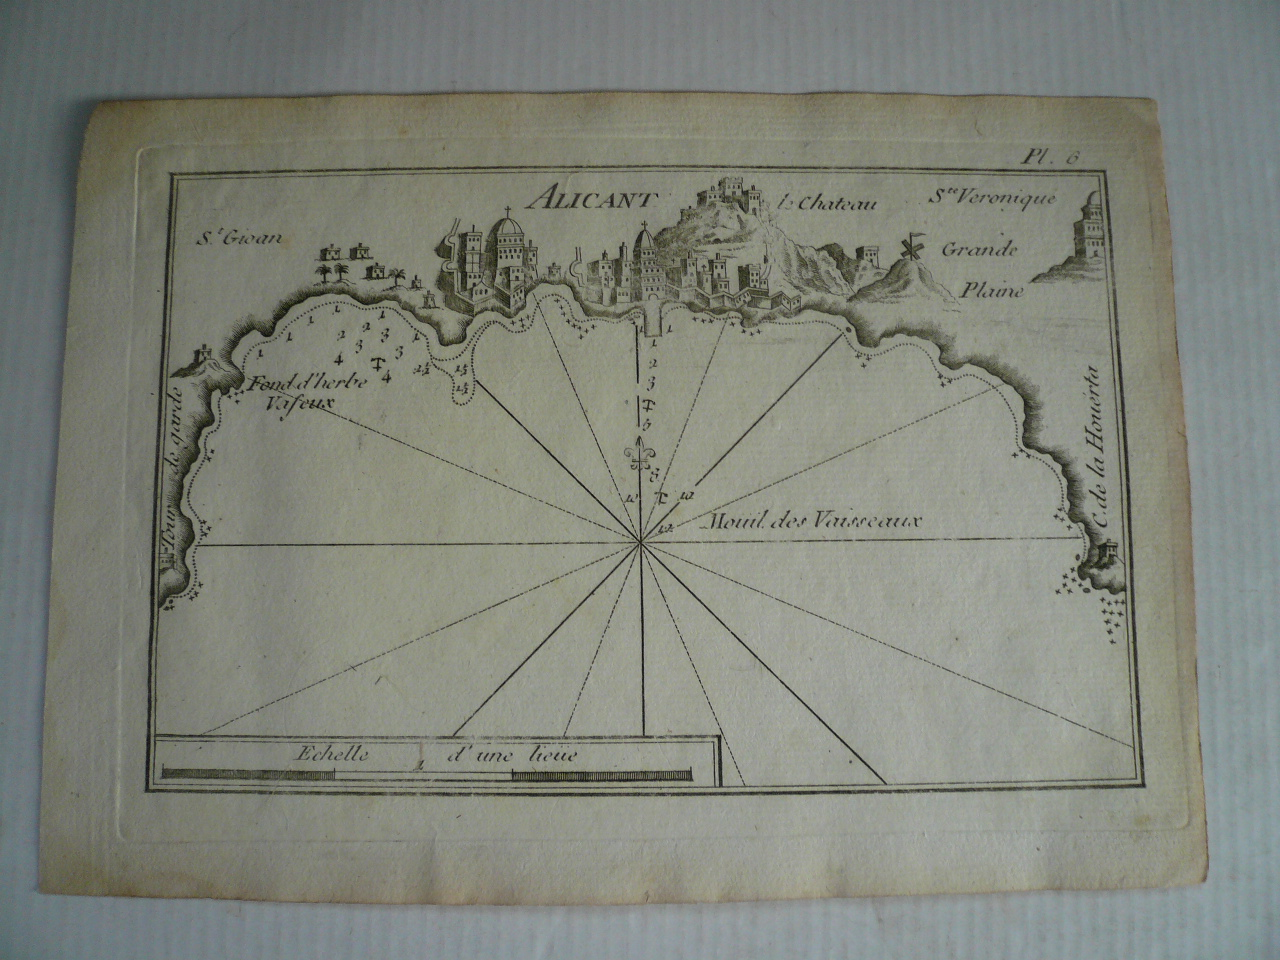 Alicante, anno 1804, copperengraving, Roux Joseph